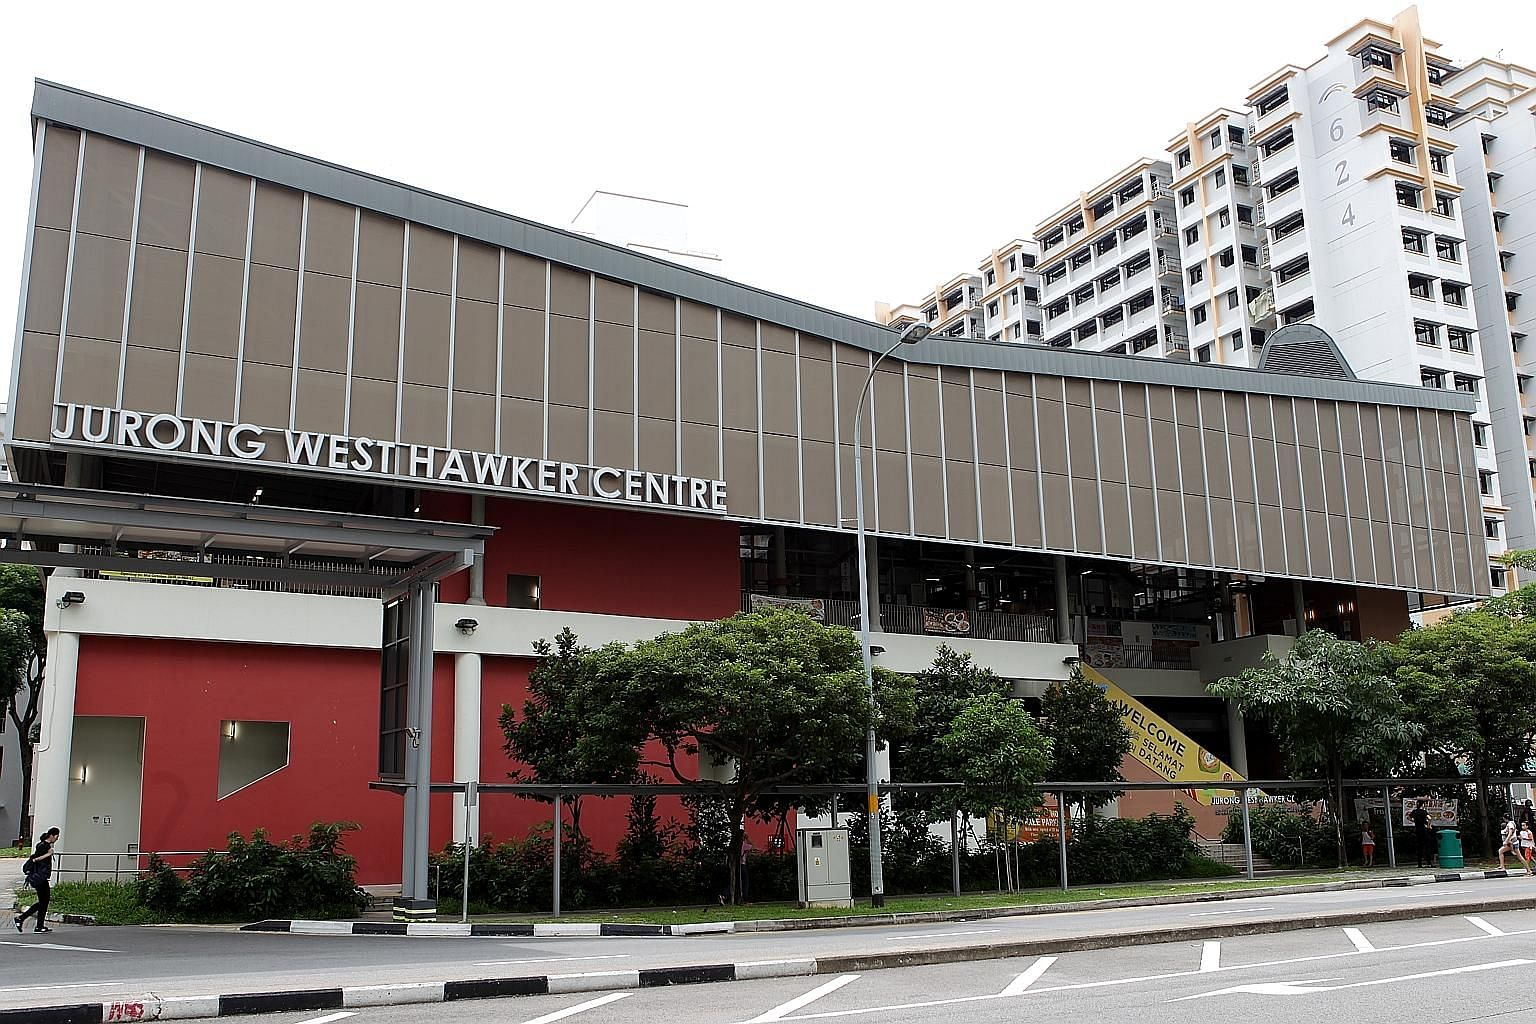 The sign on the facade of Jurong West Hawker Centre will be changed to read Jurong West Hawker Centre and Market to increase awareness of the existence of the wet market, and new signage will also help to direct visitors to the market. ST PHOTO: ZHAN